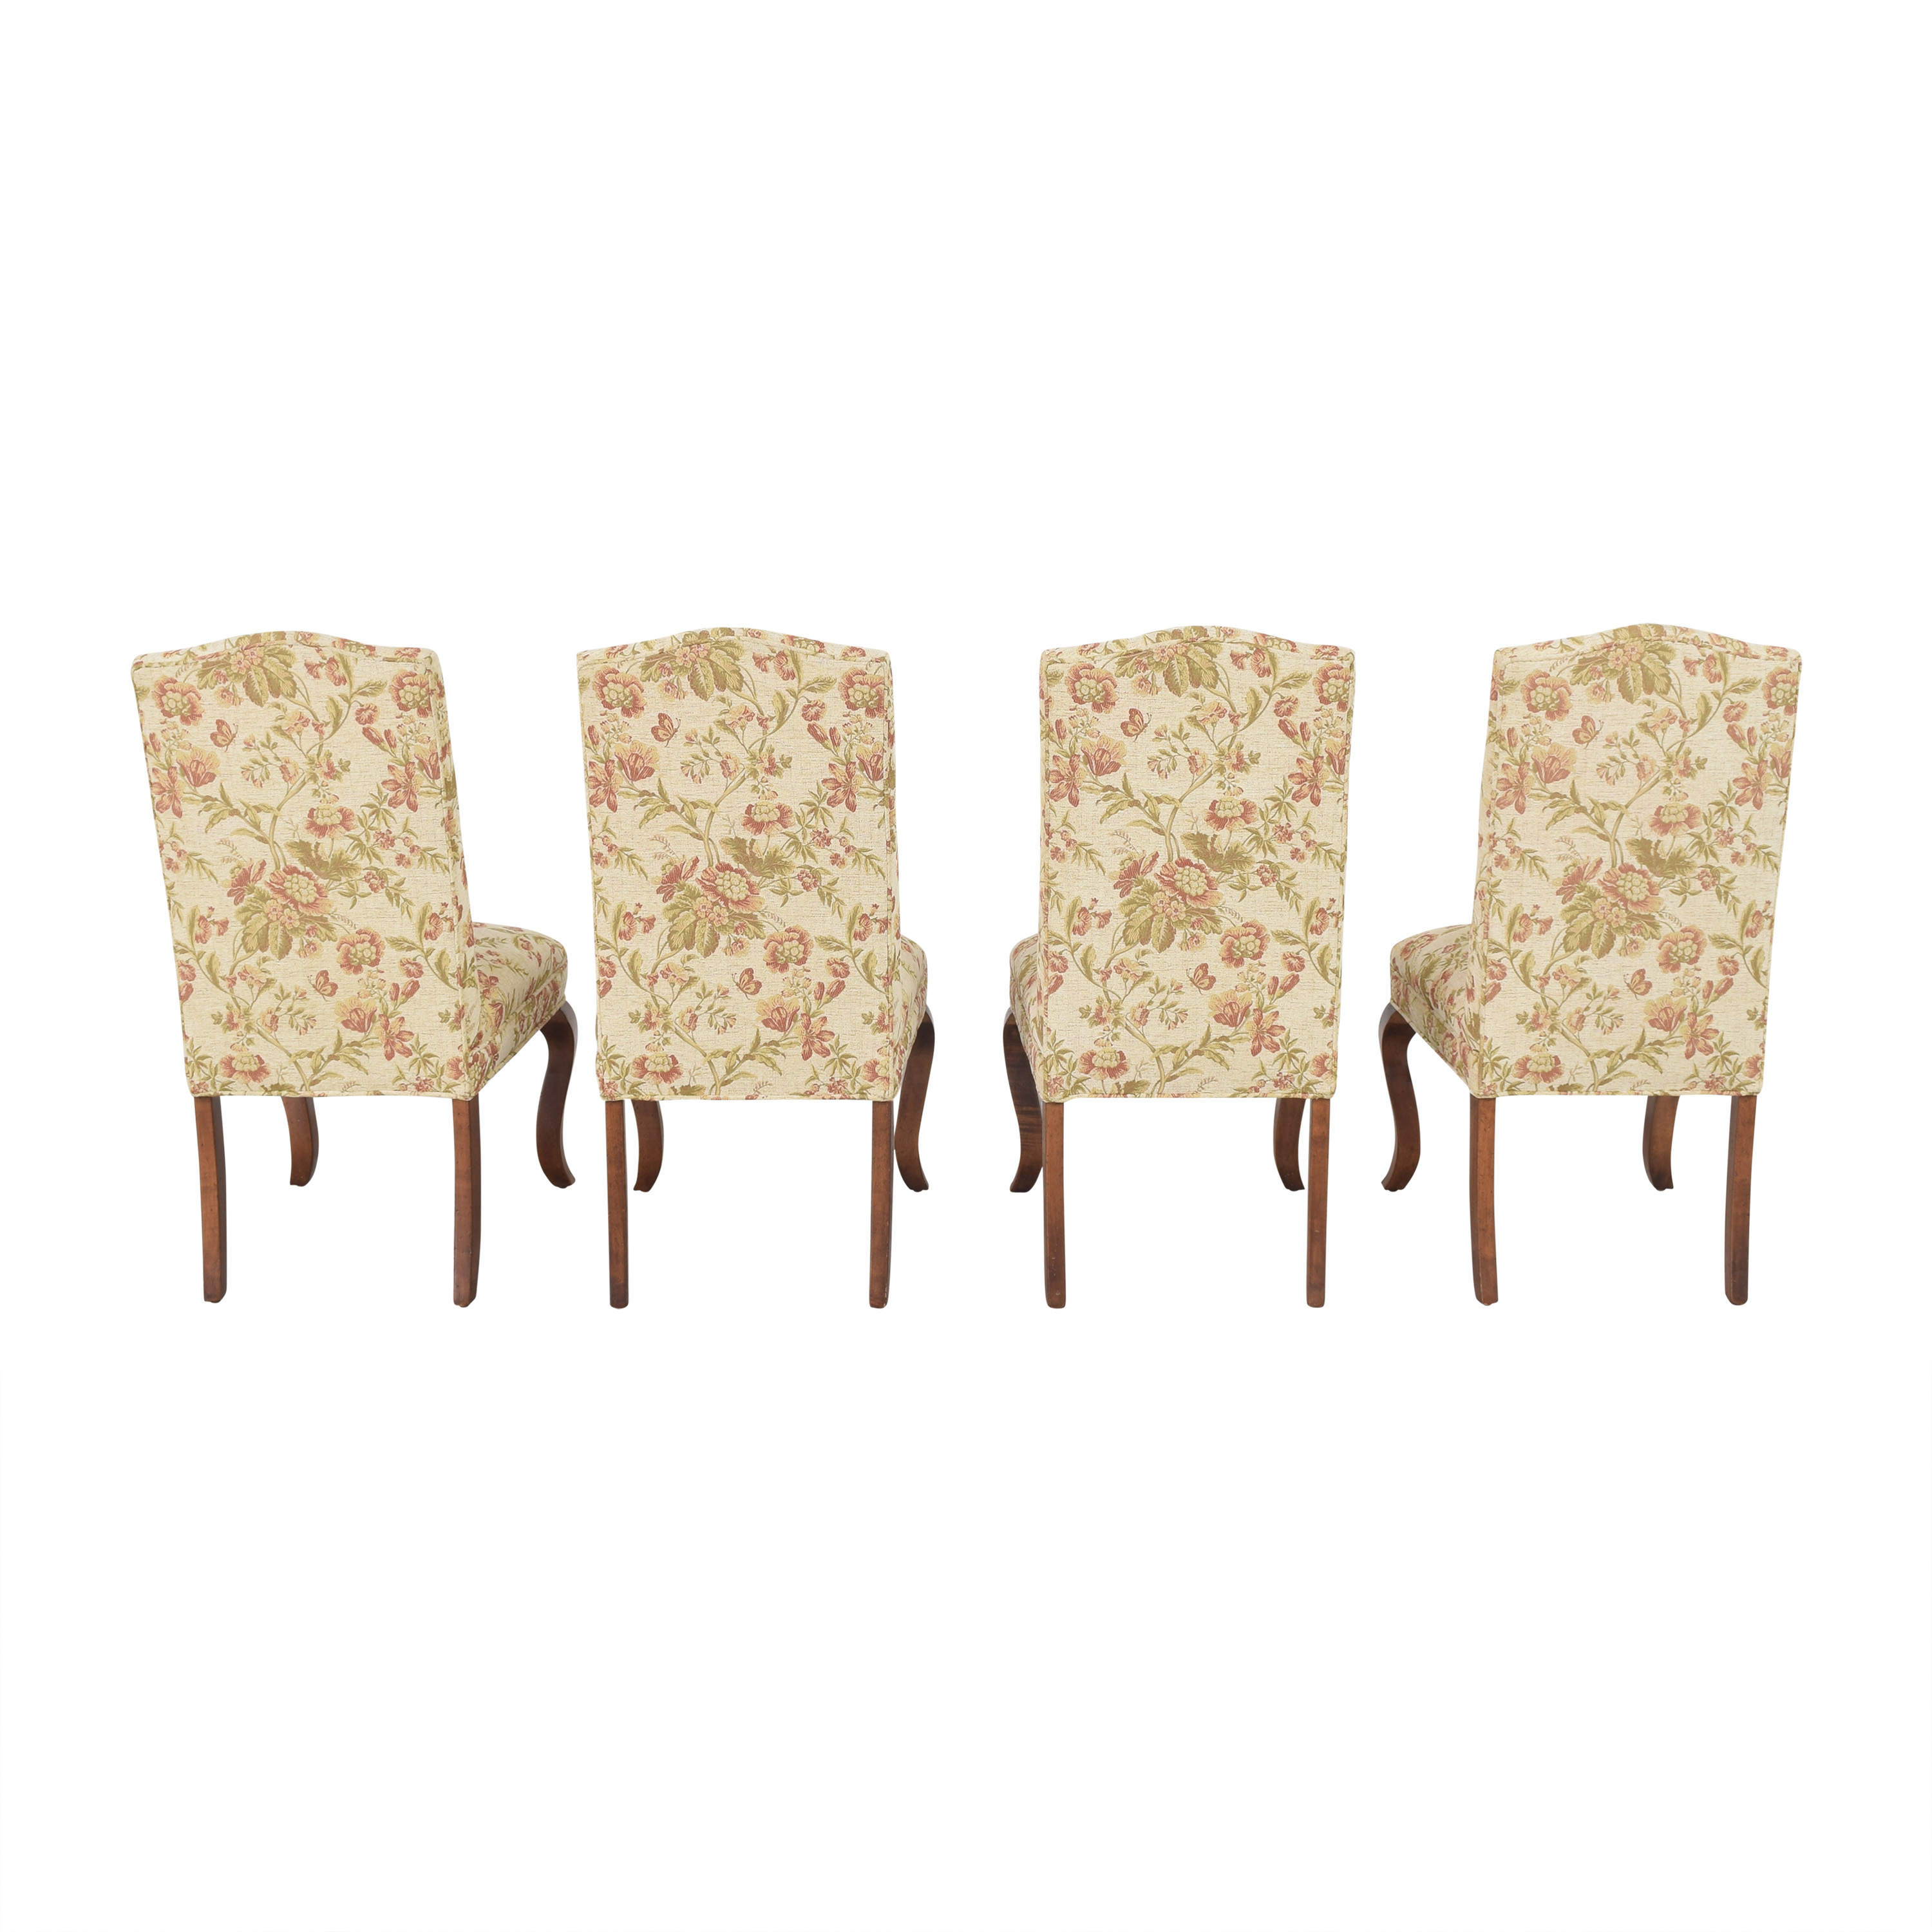 Queen Anne Upholstered Dining Chairs / Chairs